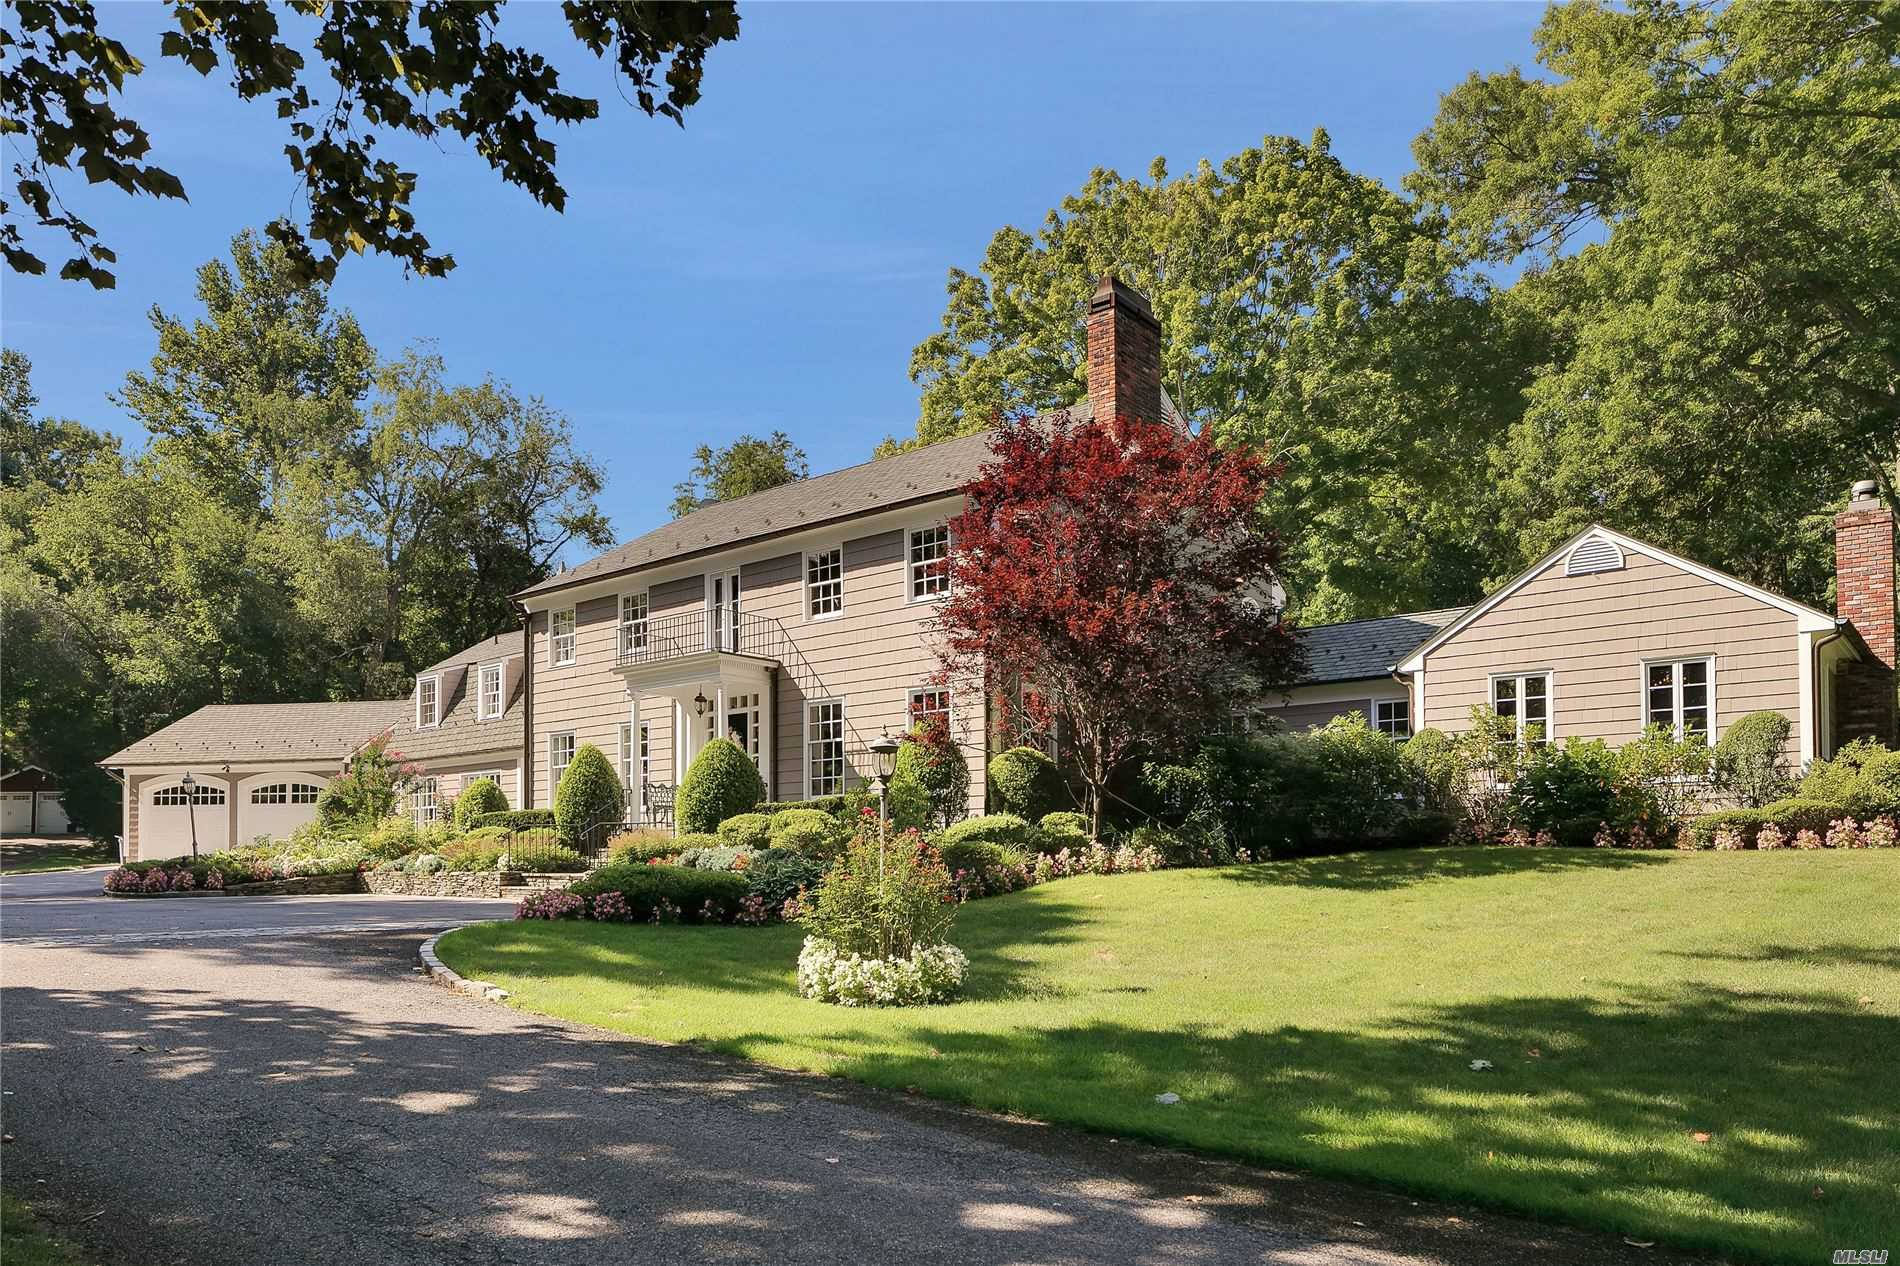 177 Cove Rd - Oyster Bay Cove, New York